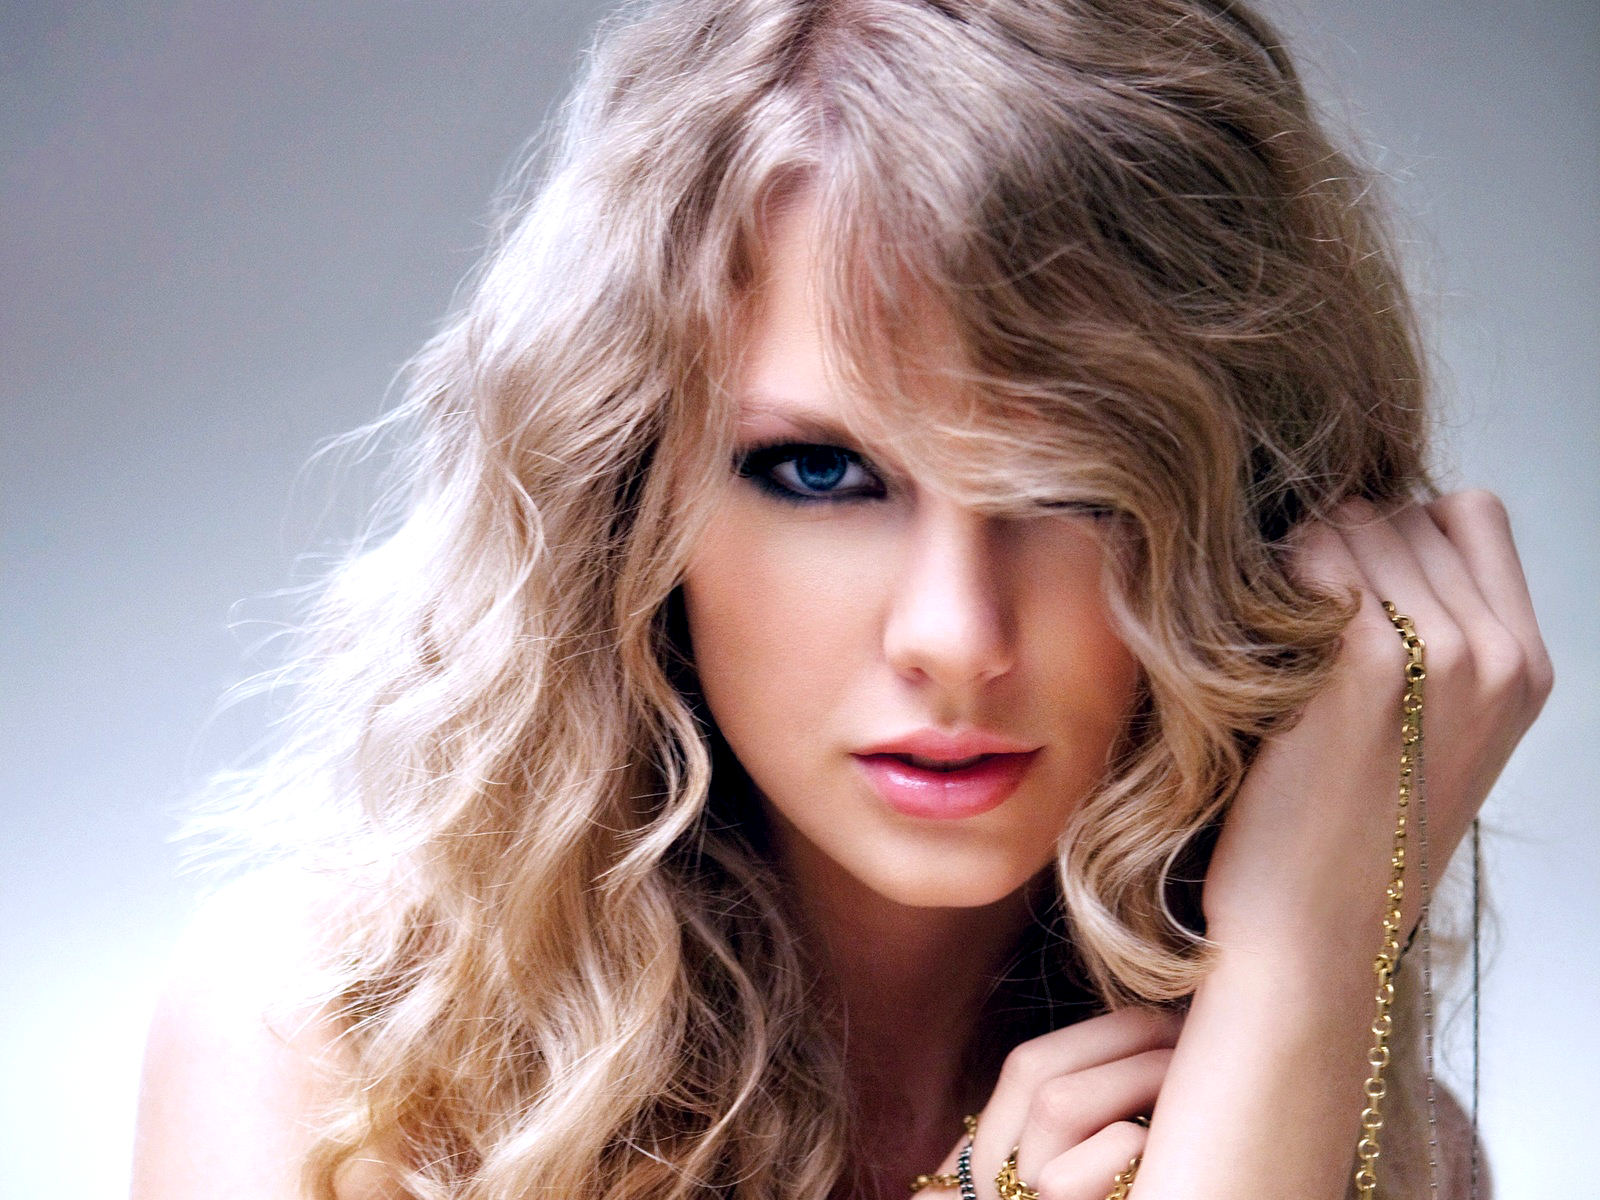 The taylor swift club images taylor hd wallpaper and background the taylor swift club images taylor hd wallpaper and background photos voltagebd Gallery